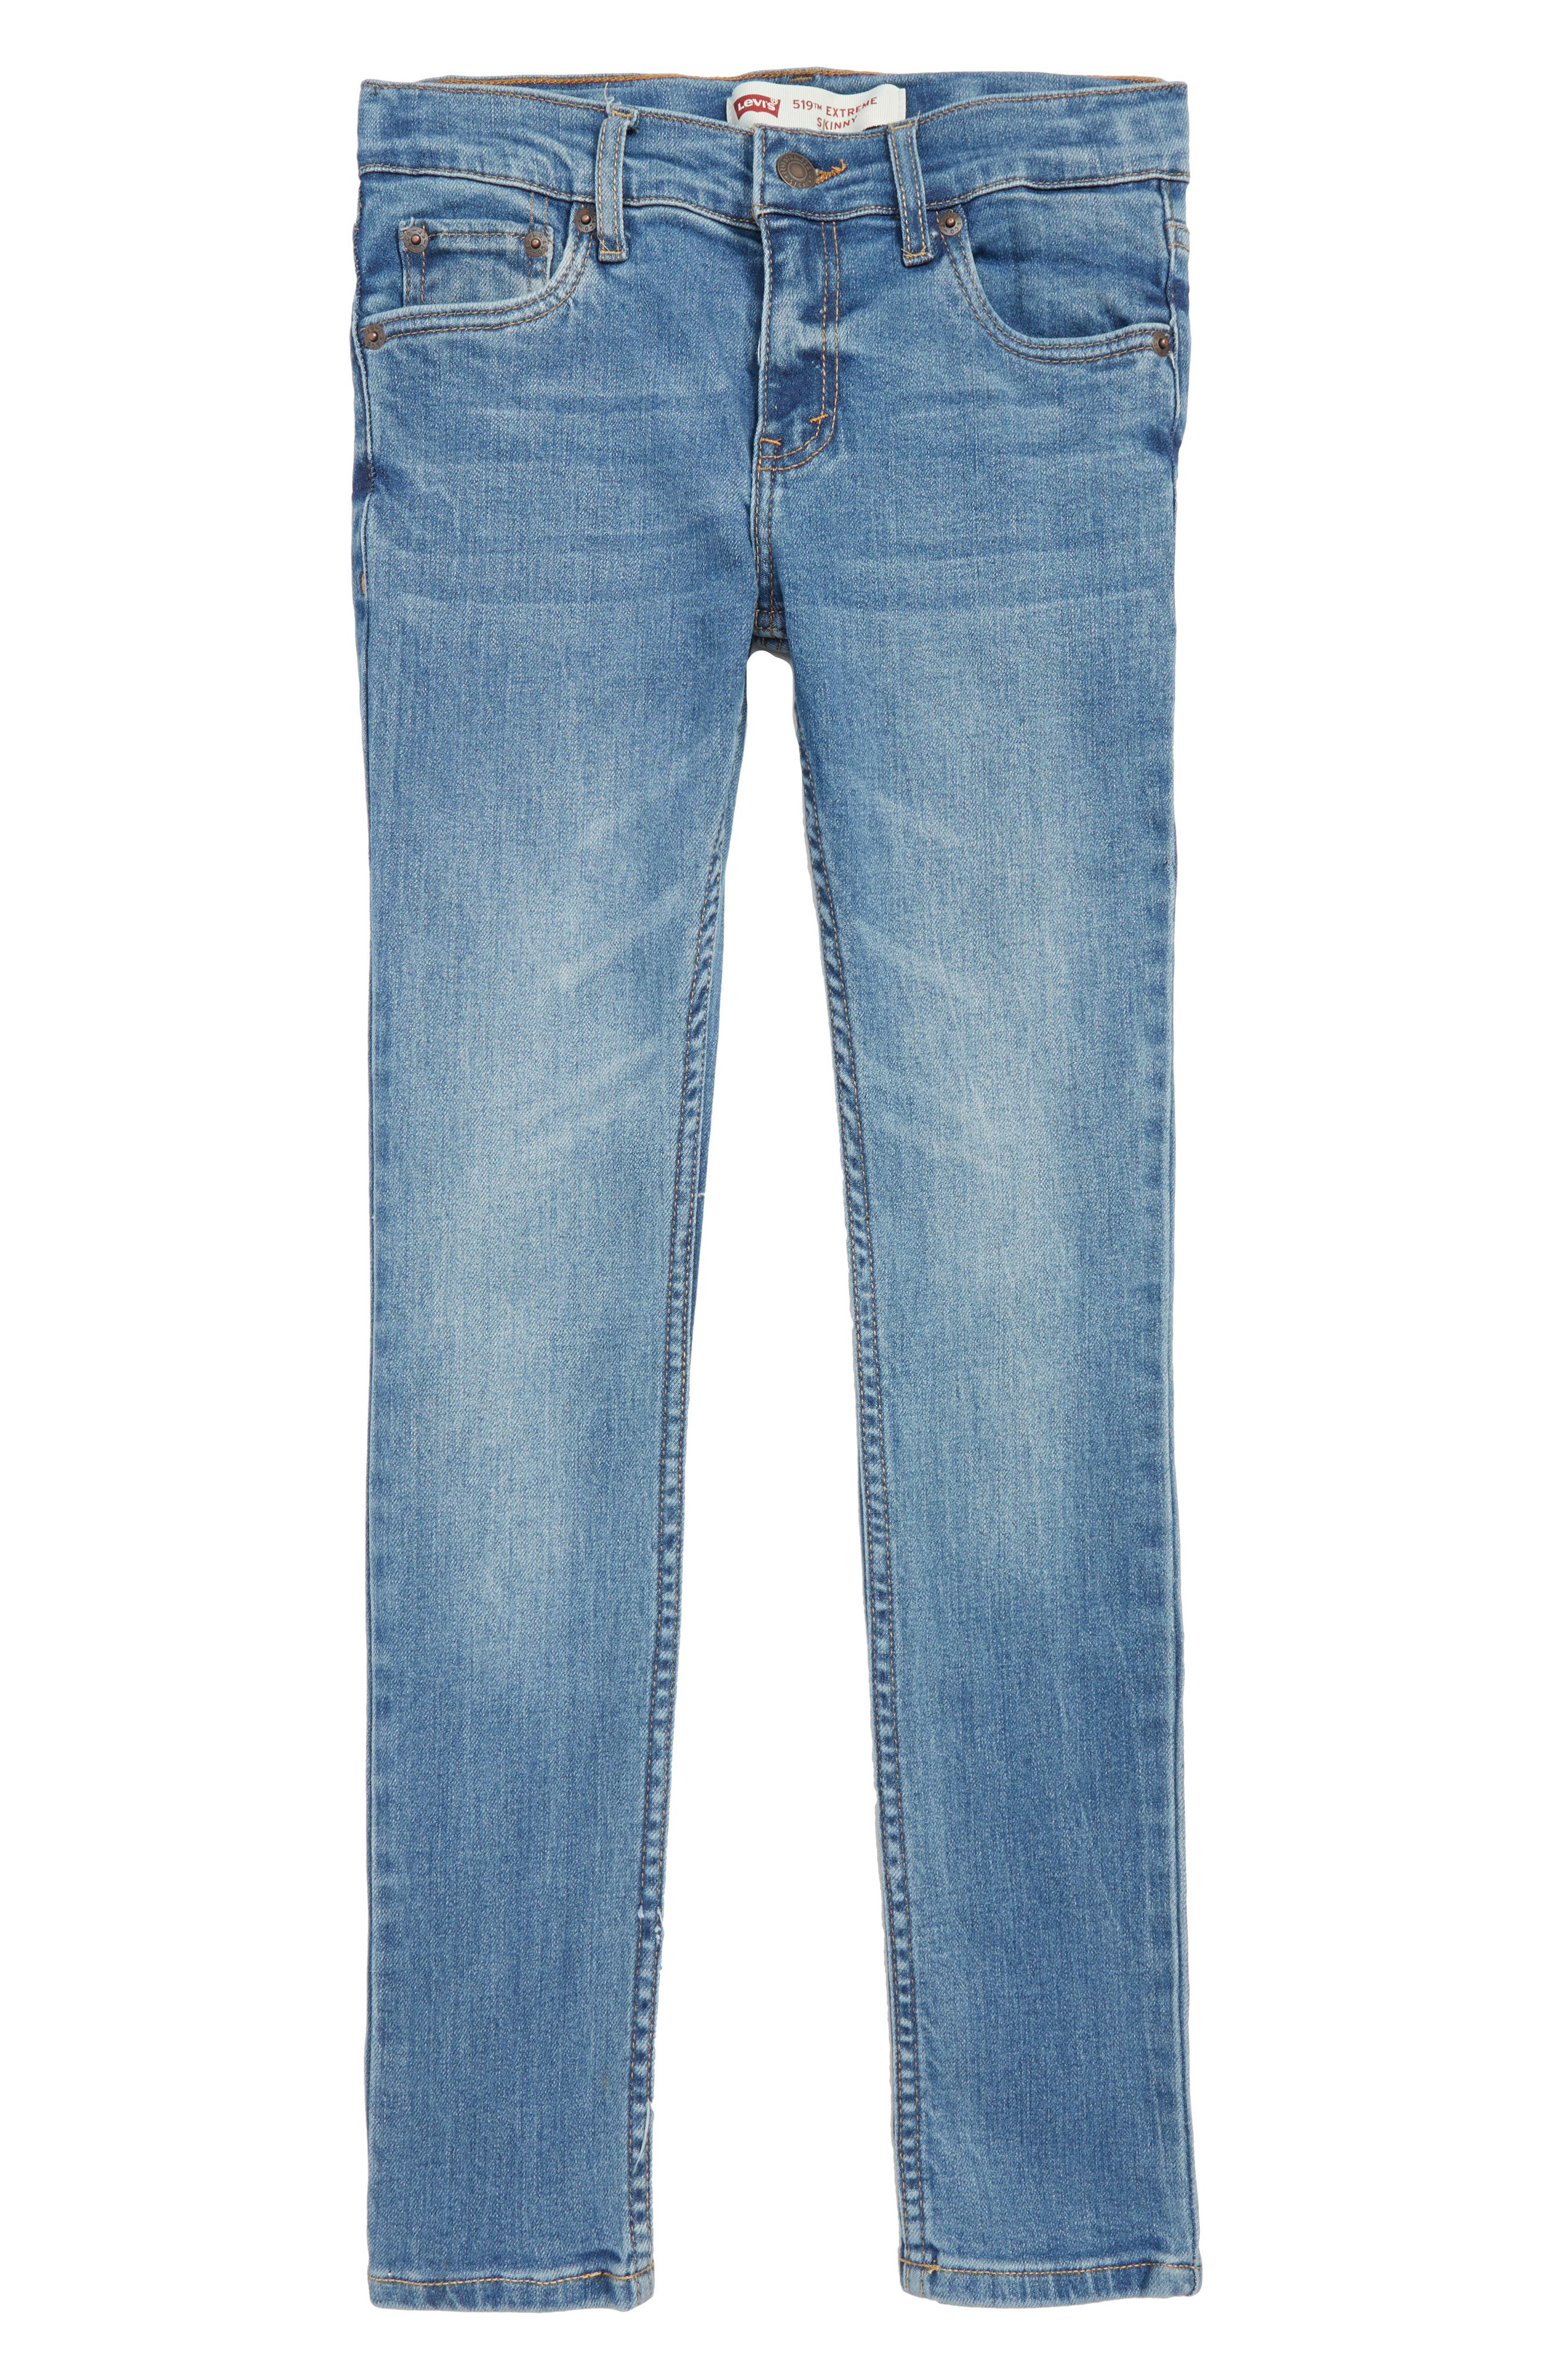 519<sup>™</sup> Extreme Skinny Fit Jeans,                             Main thumbnail 1, color,                             PALISADES